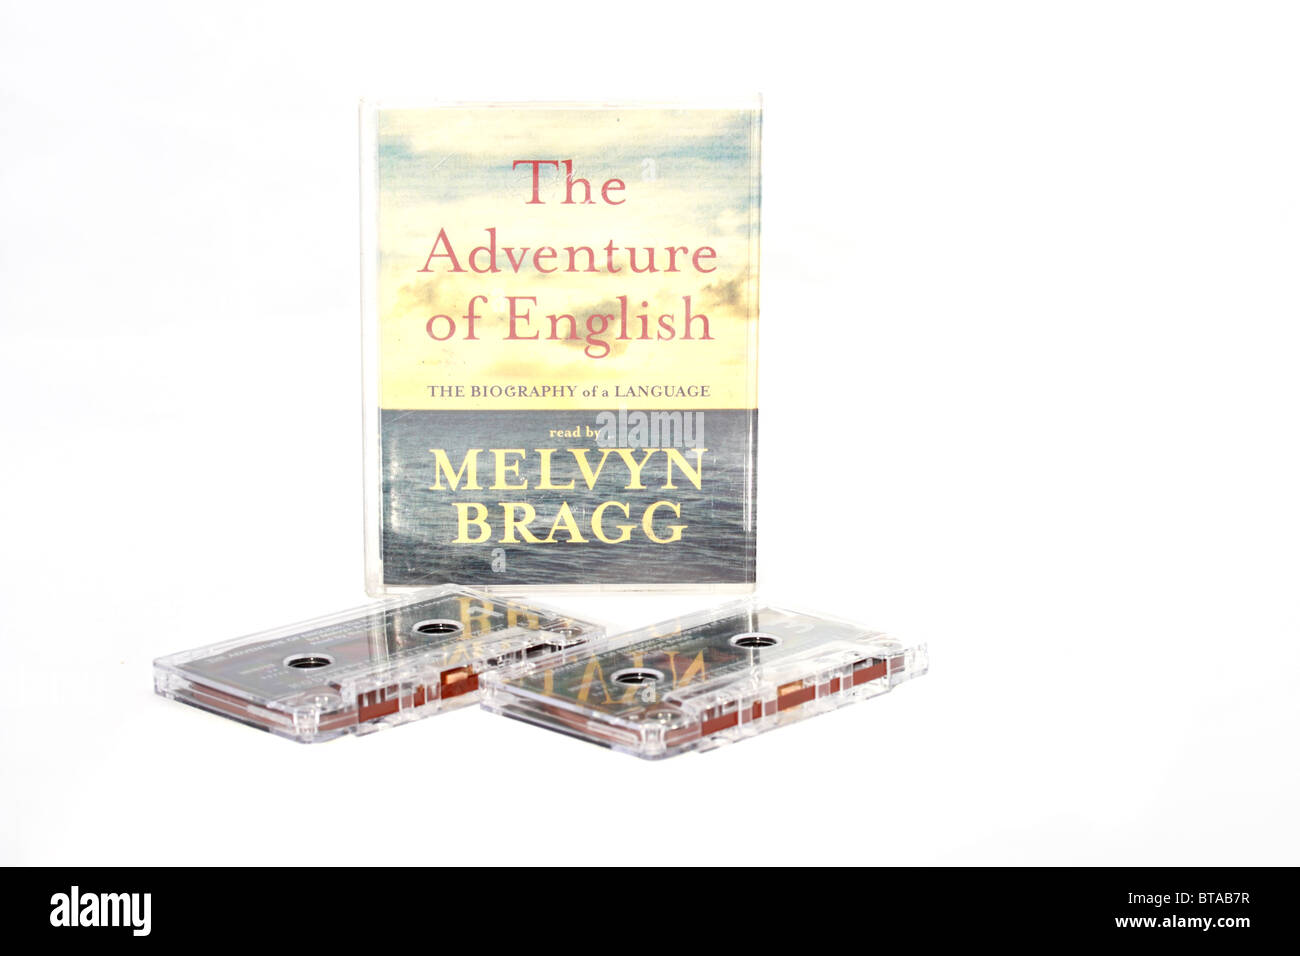 The Adventure Of English The Biography Of A Language Written And